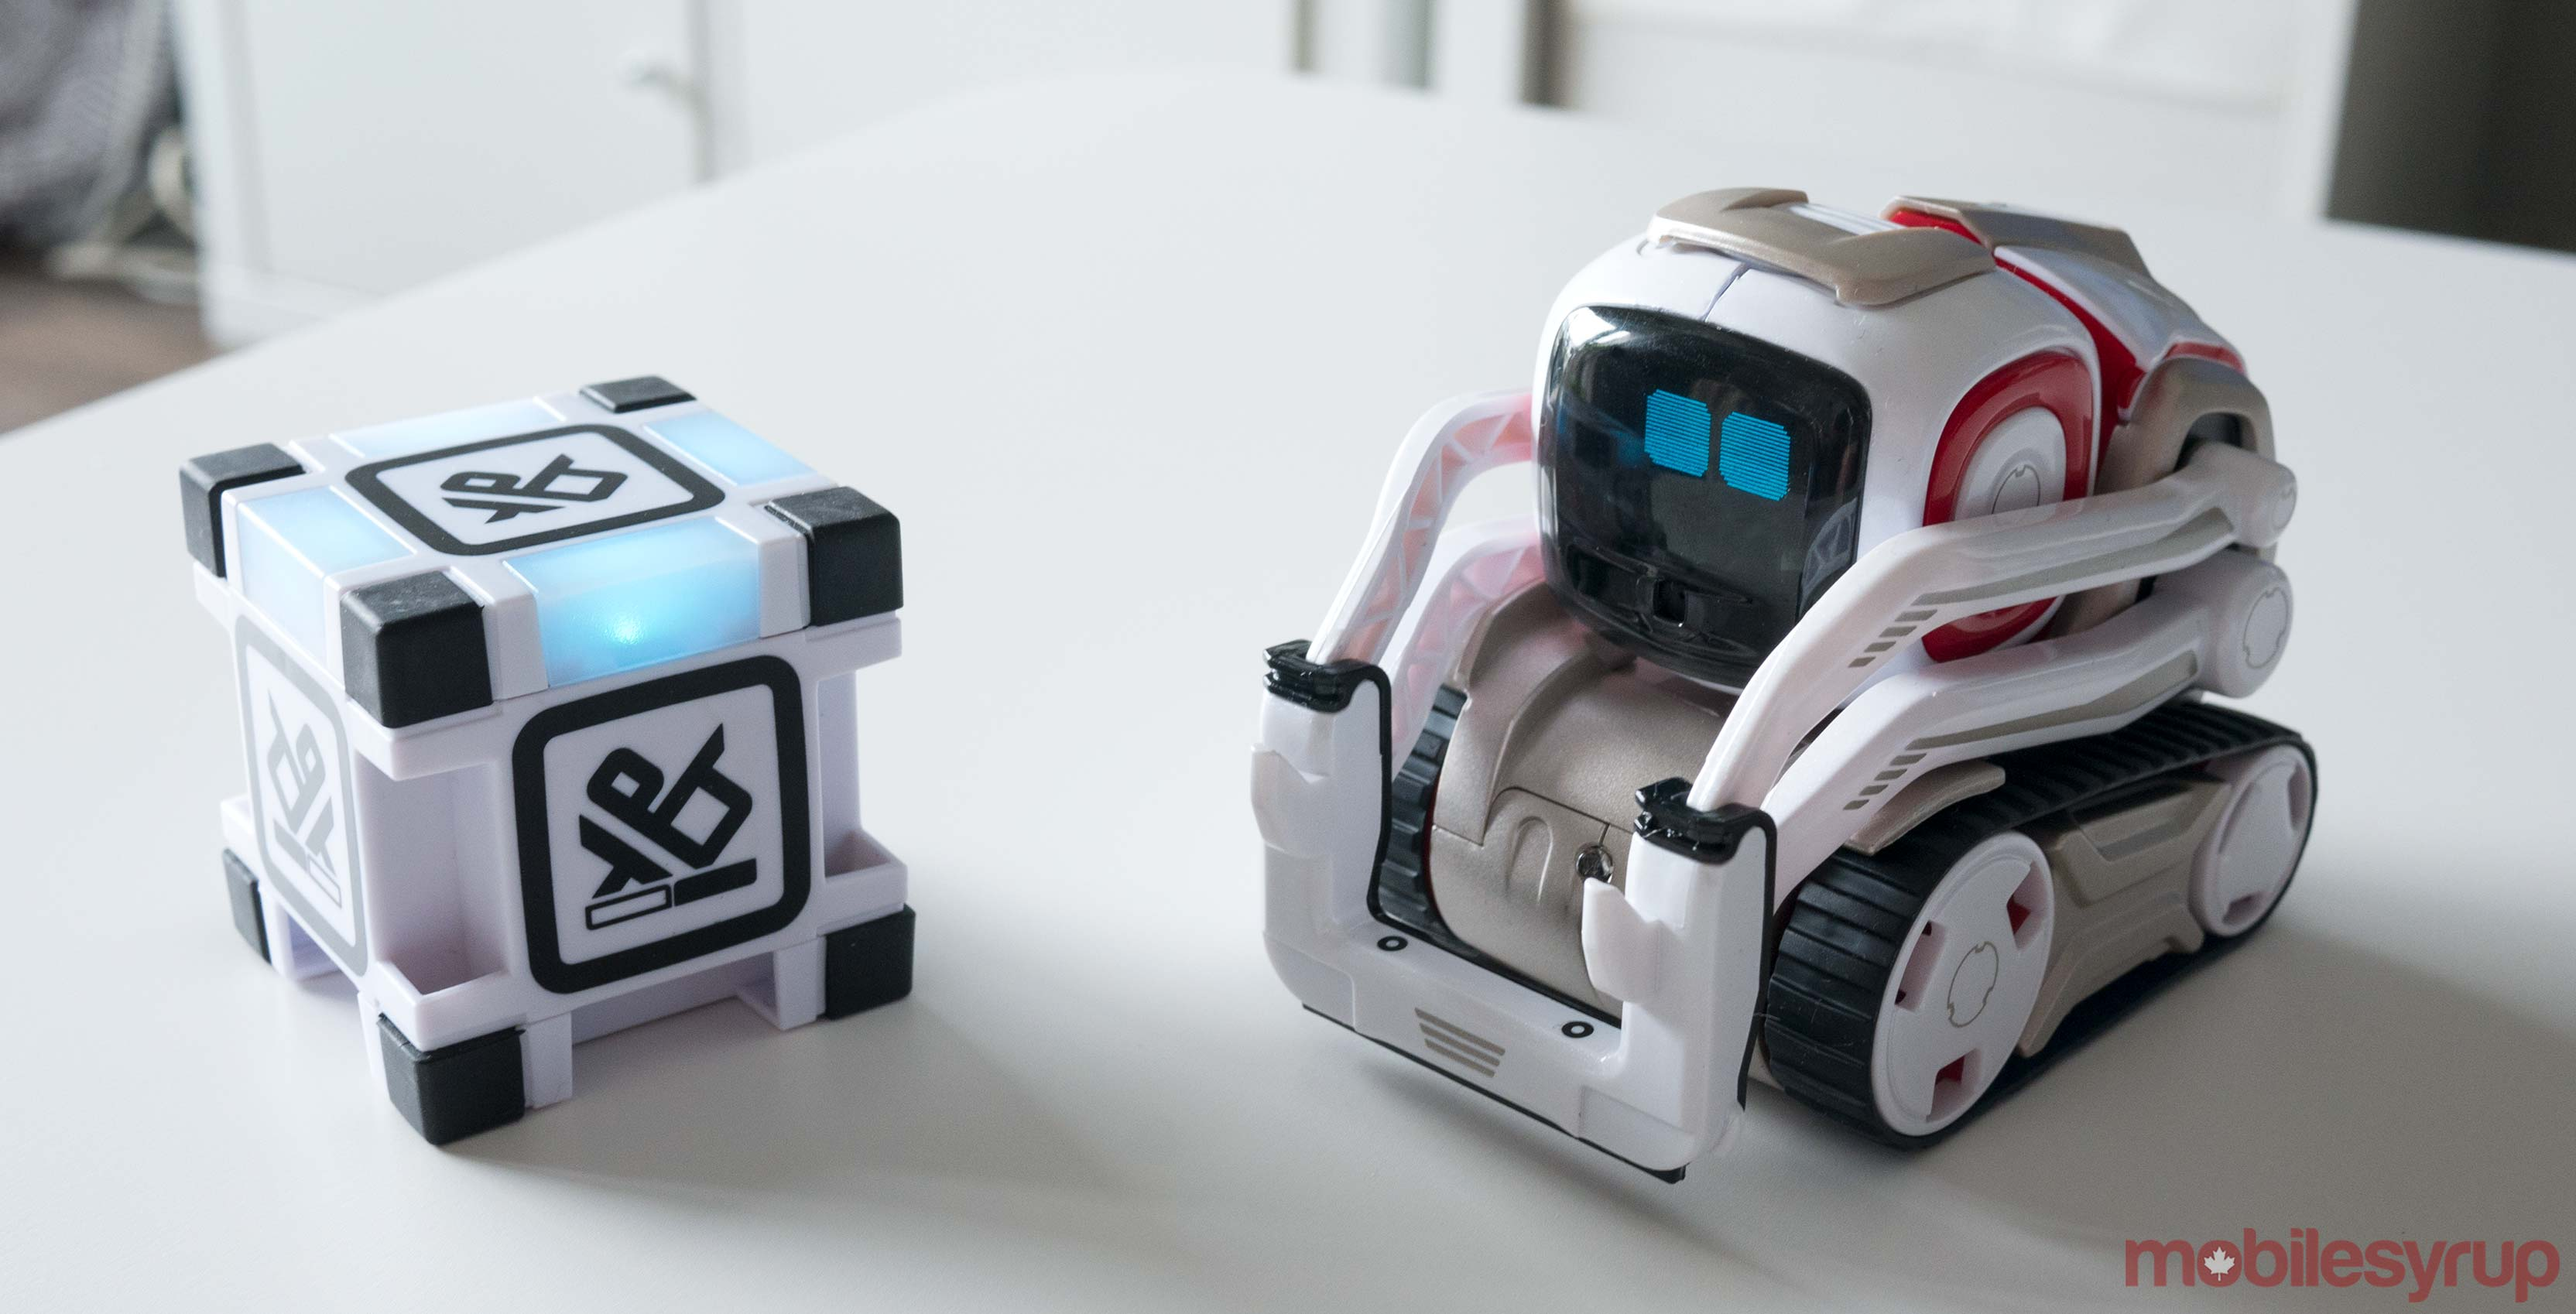 Cozmo and block